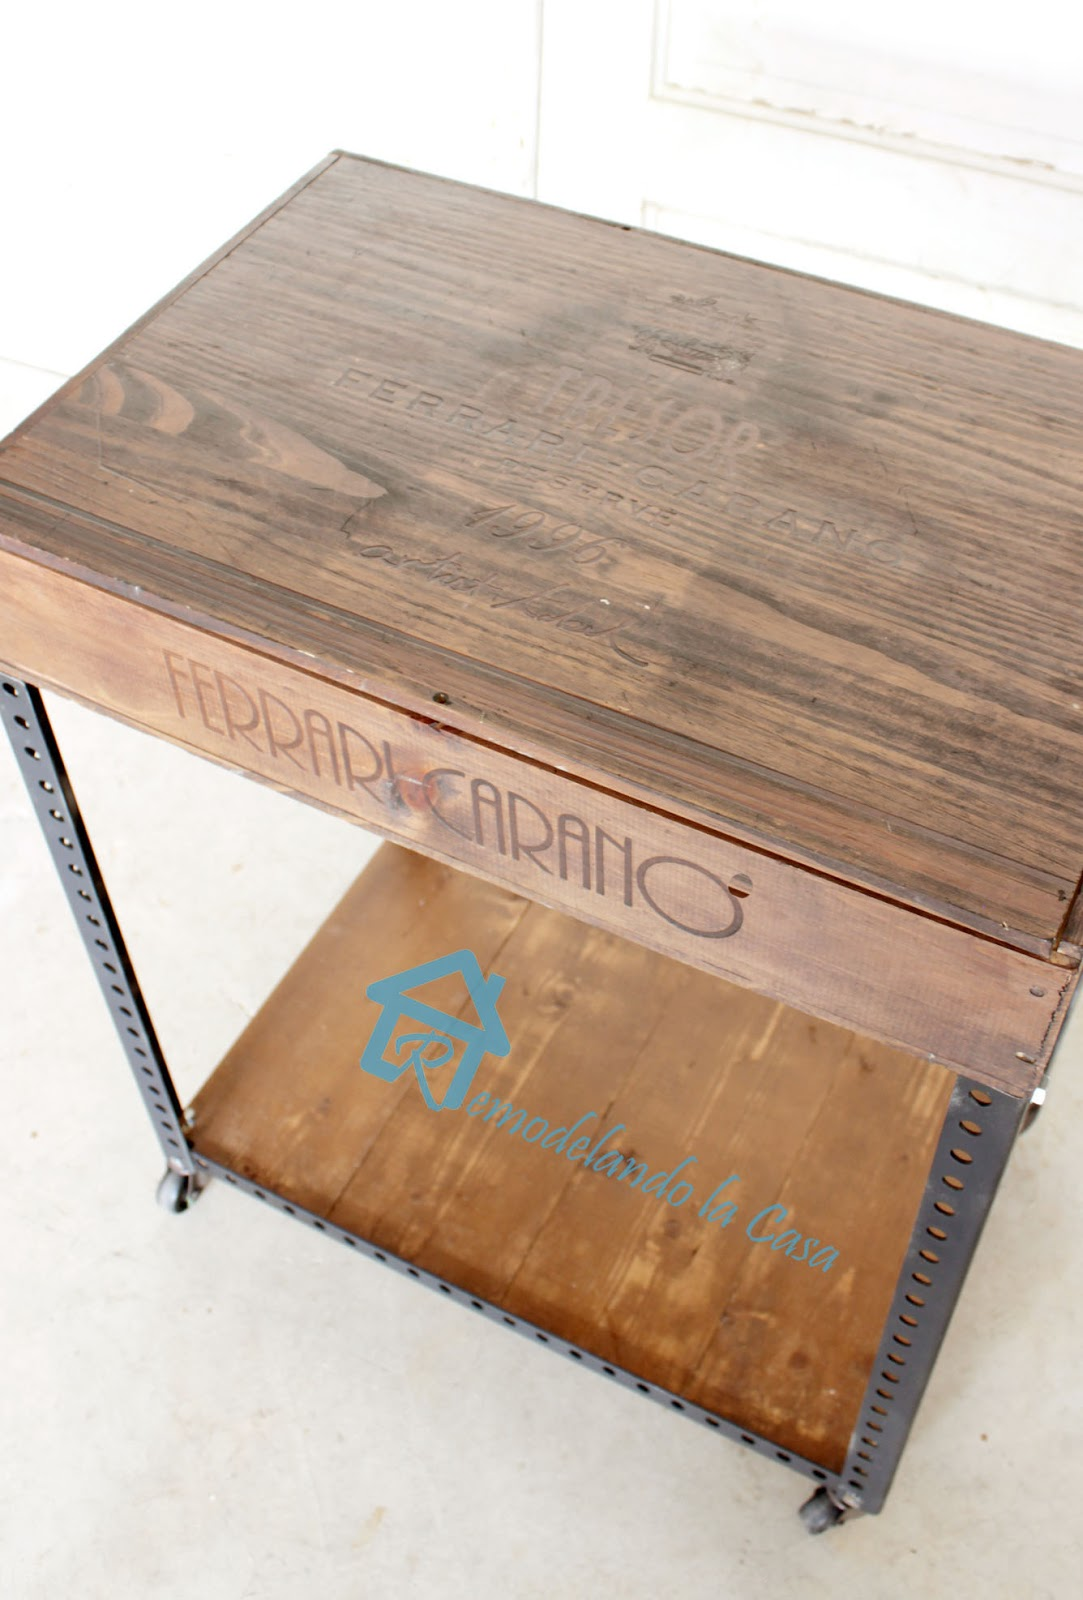 a wine box is repurposed with some metal brackets into an Industrial side table.